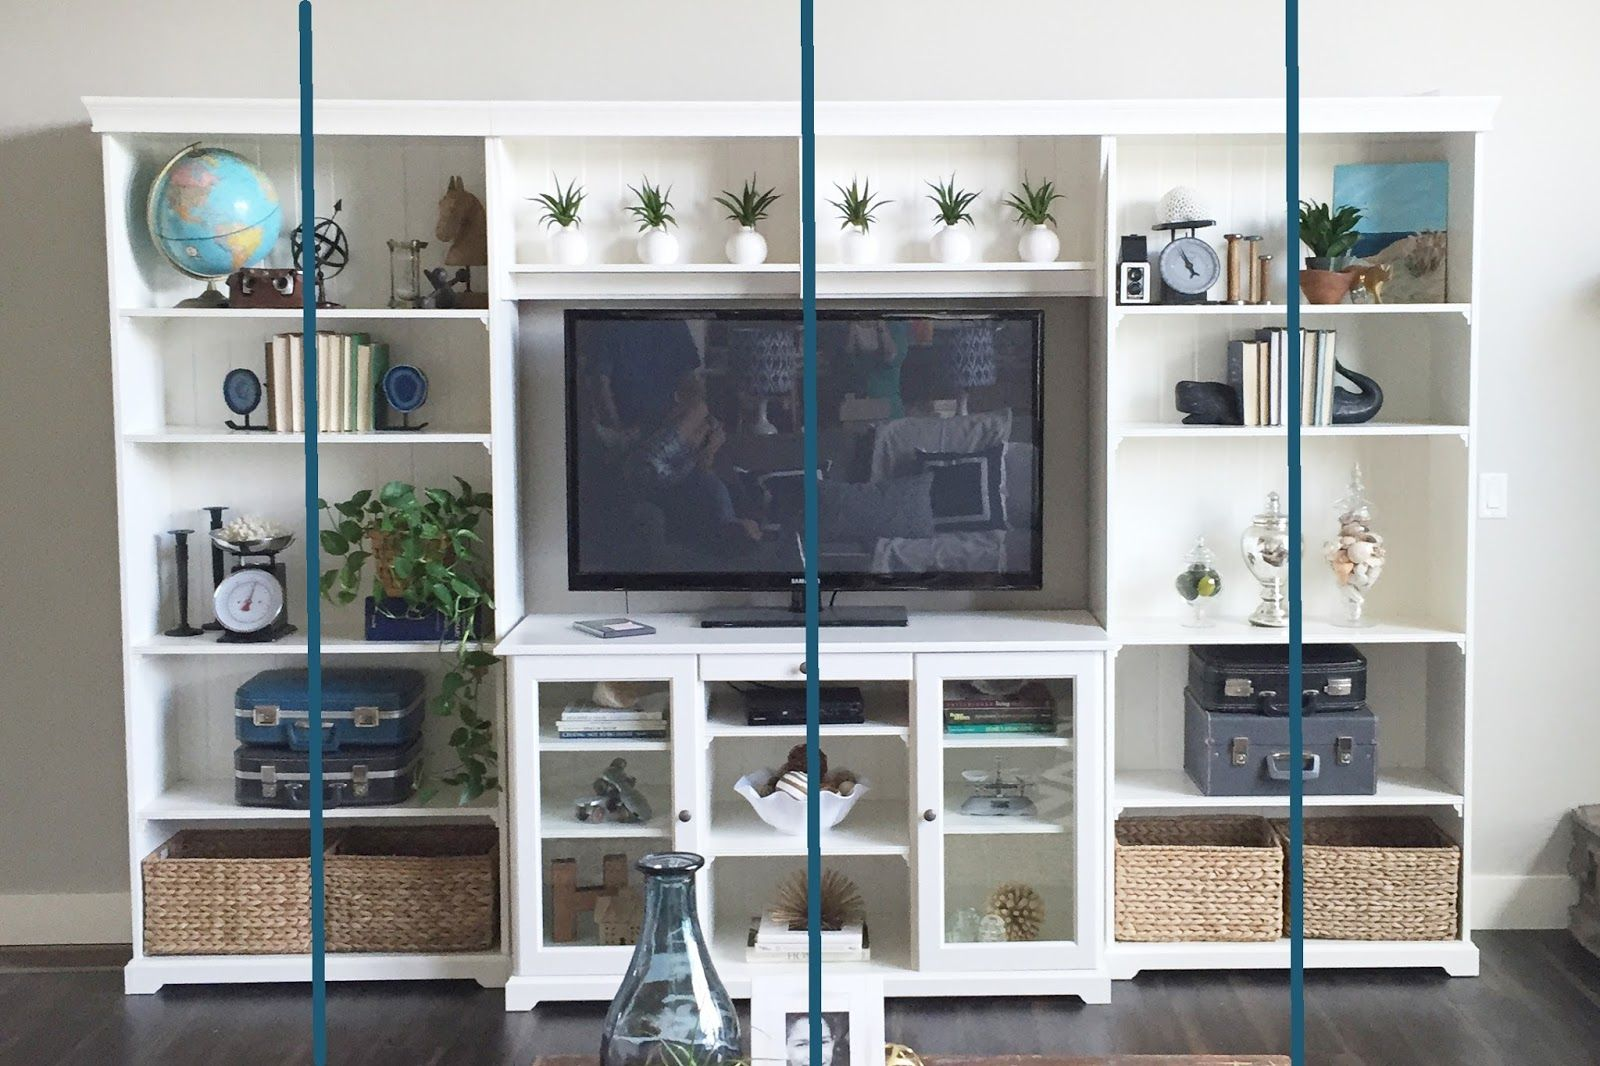 frames collections in glass thirds bookcase ikea two doors en dark while of upper gb beautifully green the olive with liatorp